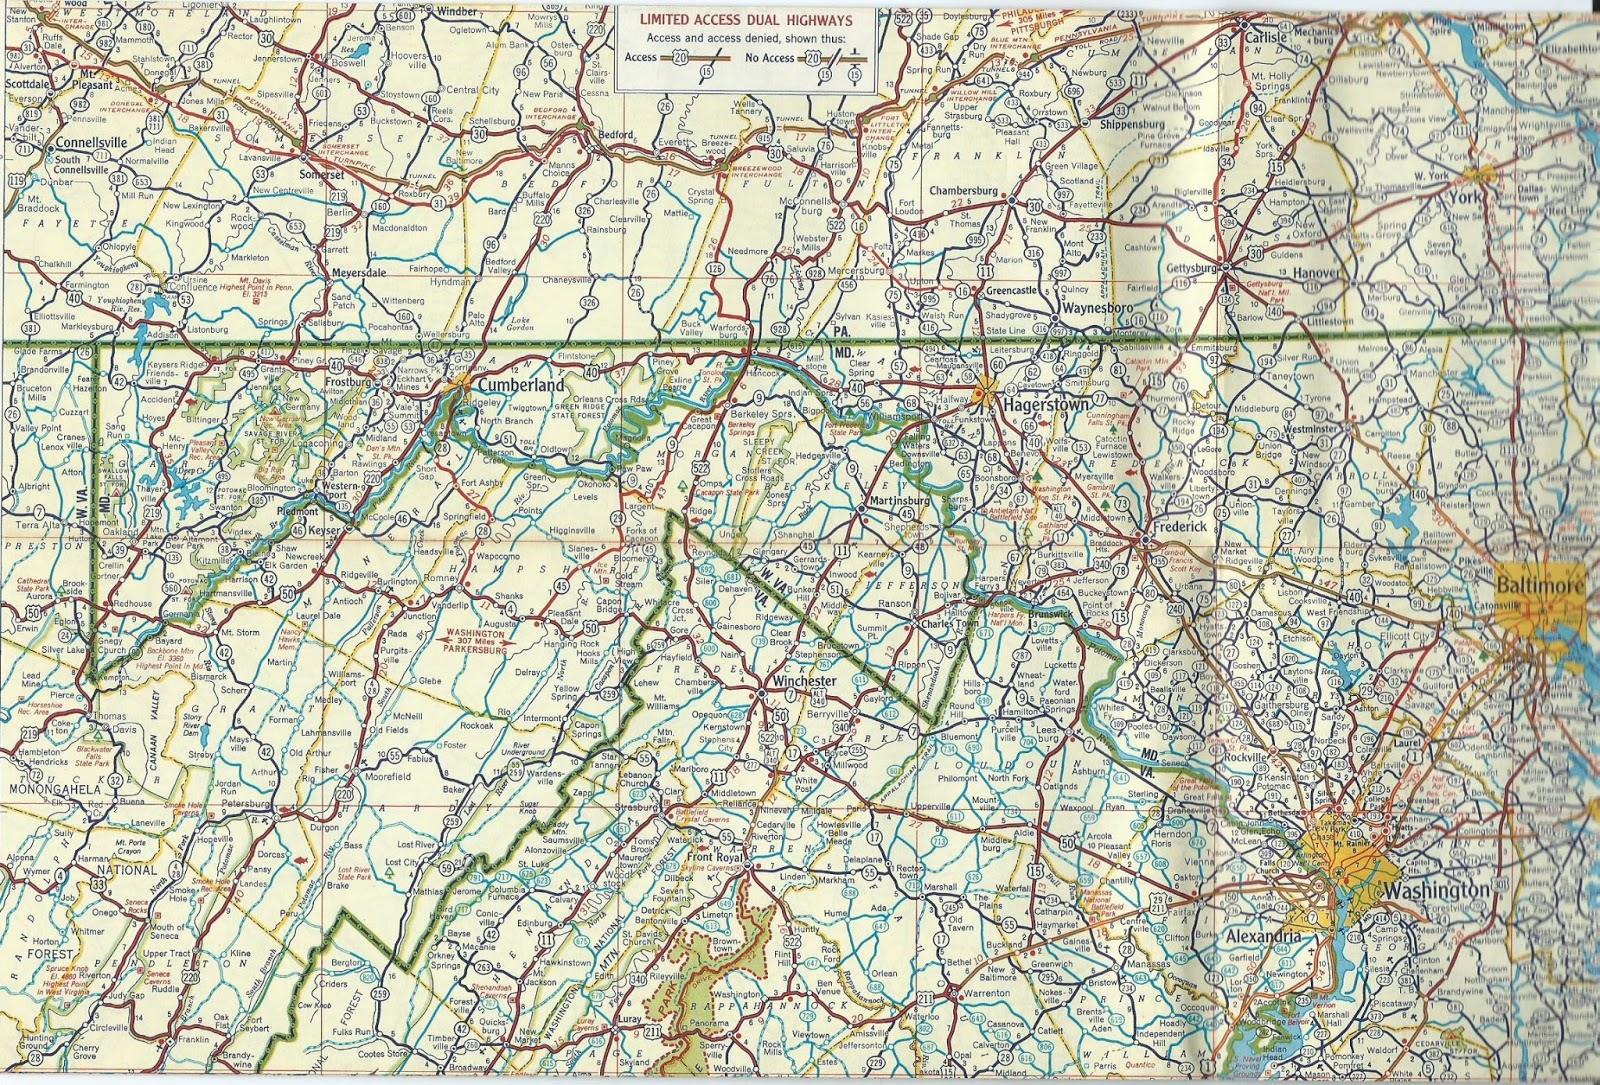 ON THE ROAD AGAIN Shell Road Map Of Delaware Maryland - Road map of delaware